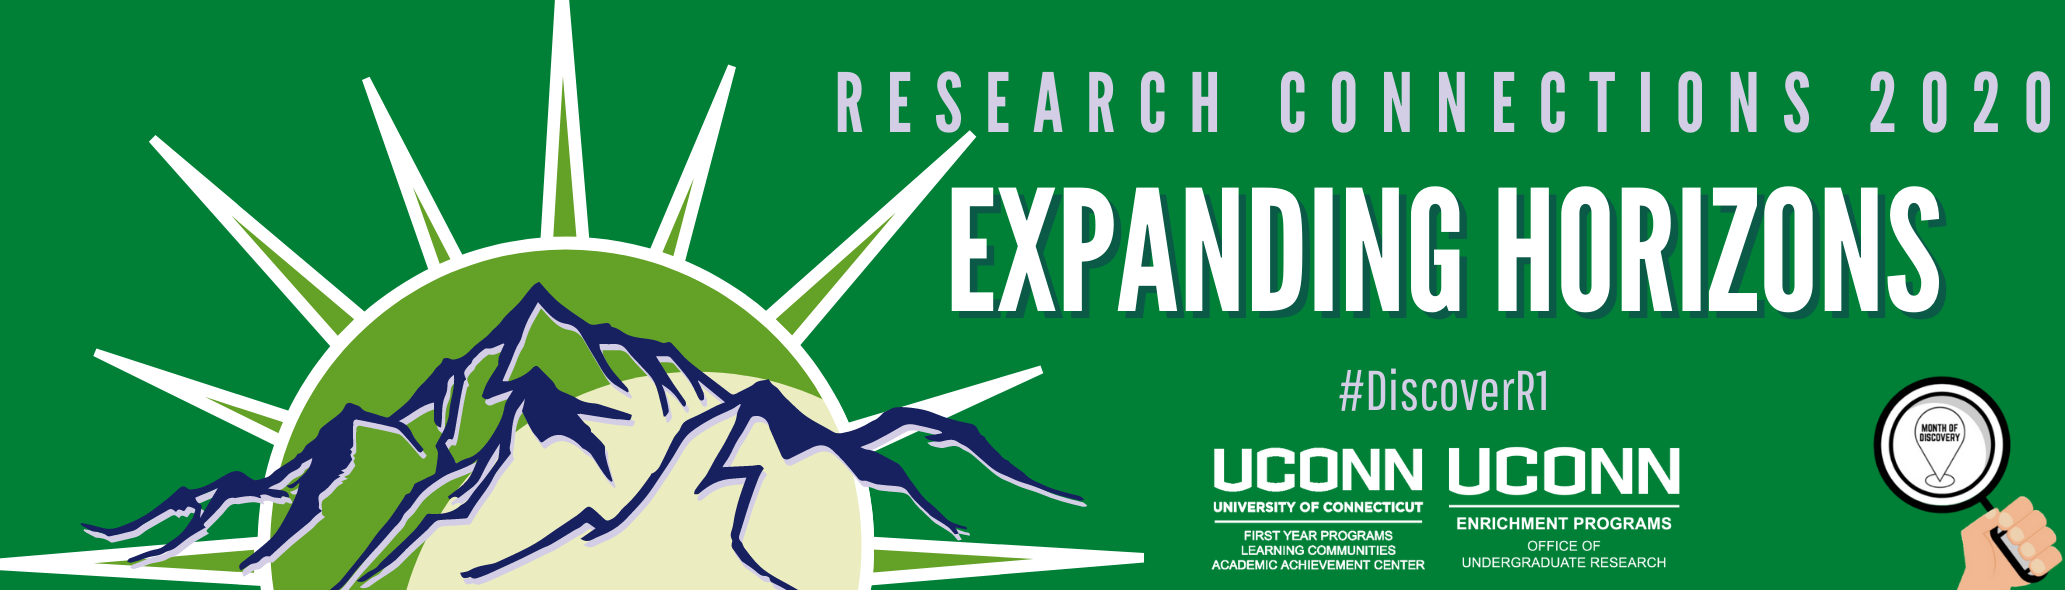 Research Connections 2020